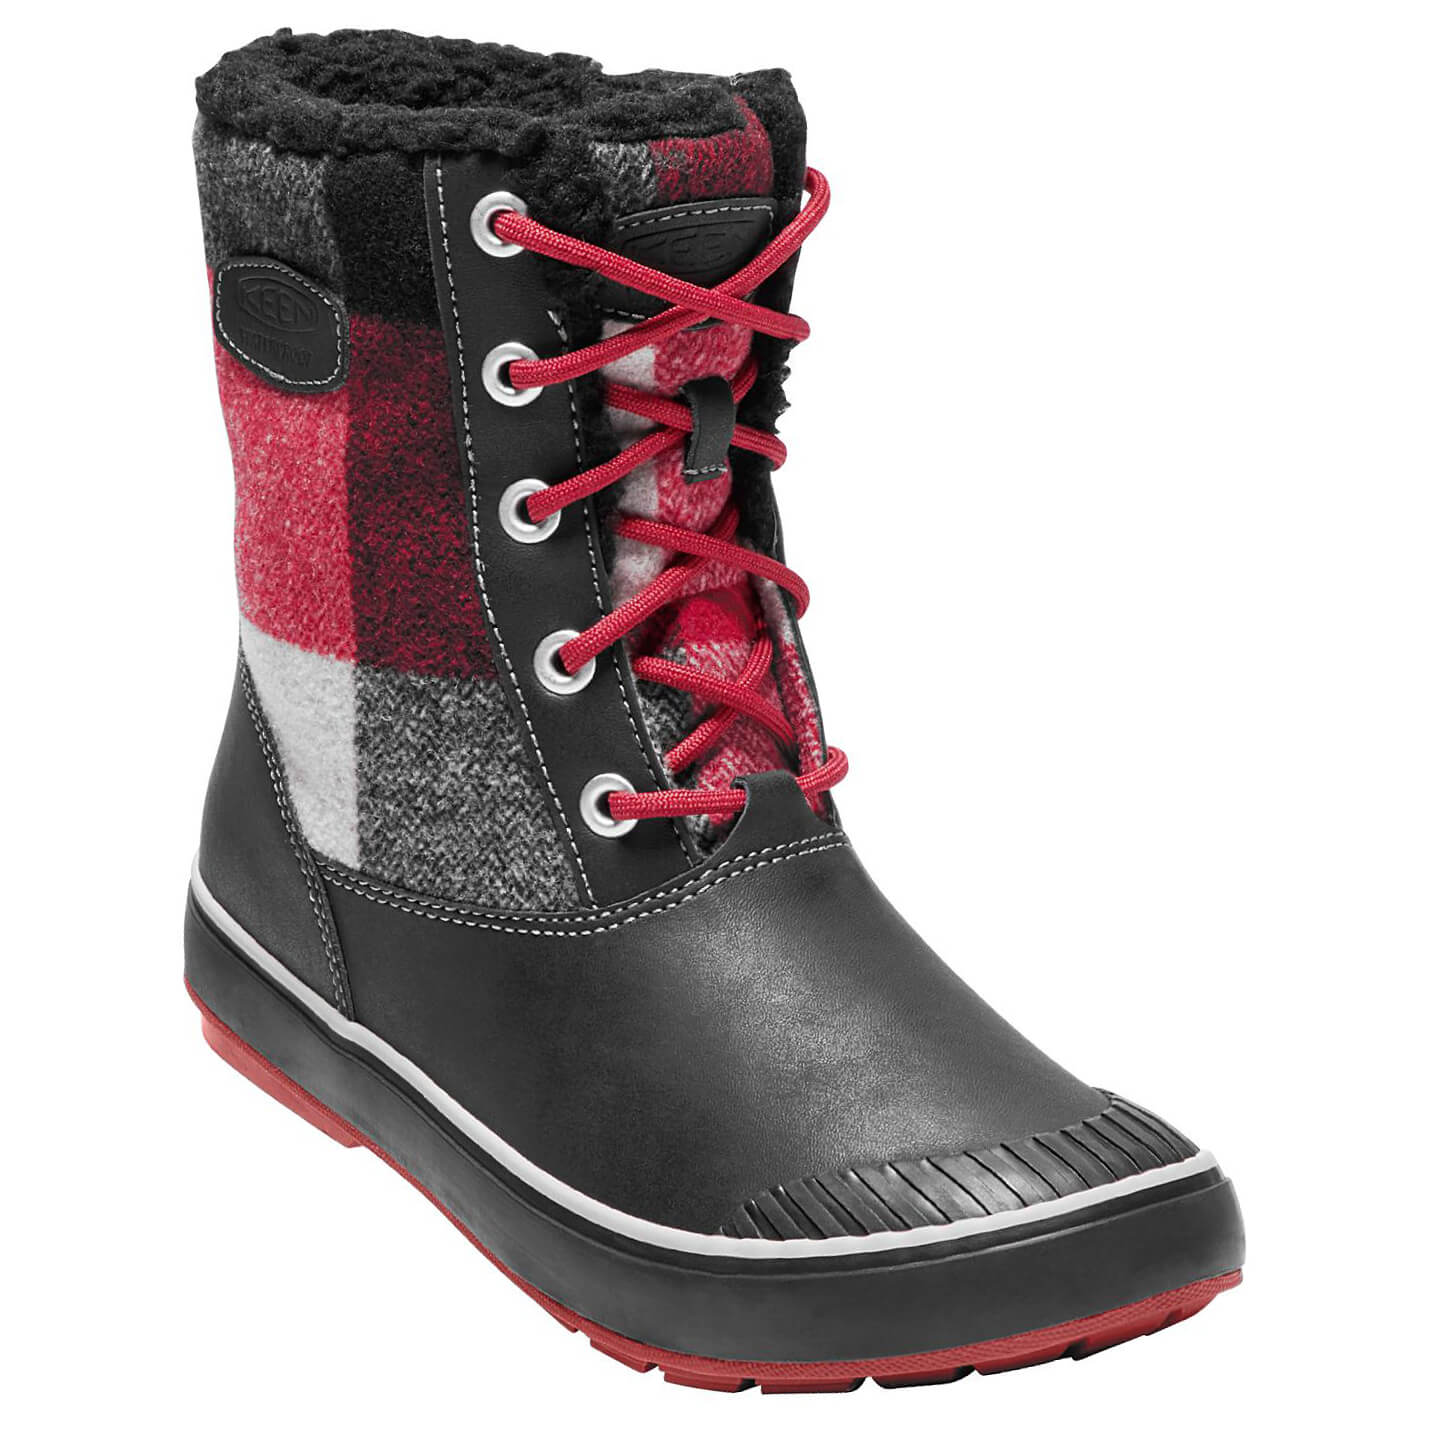 Keen Elsa Boot WP - Winter Boots Women's | Free UK